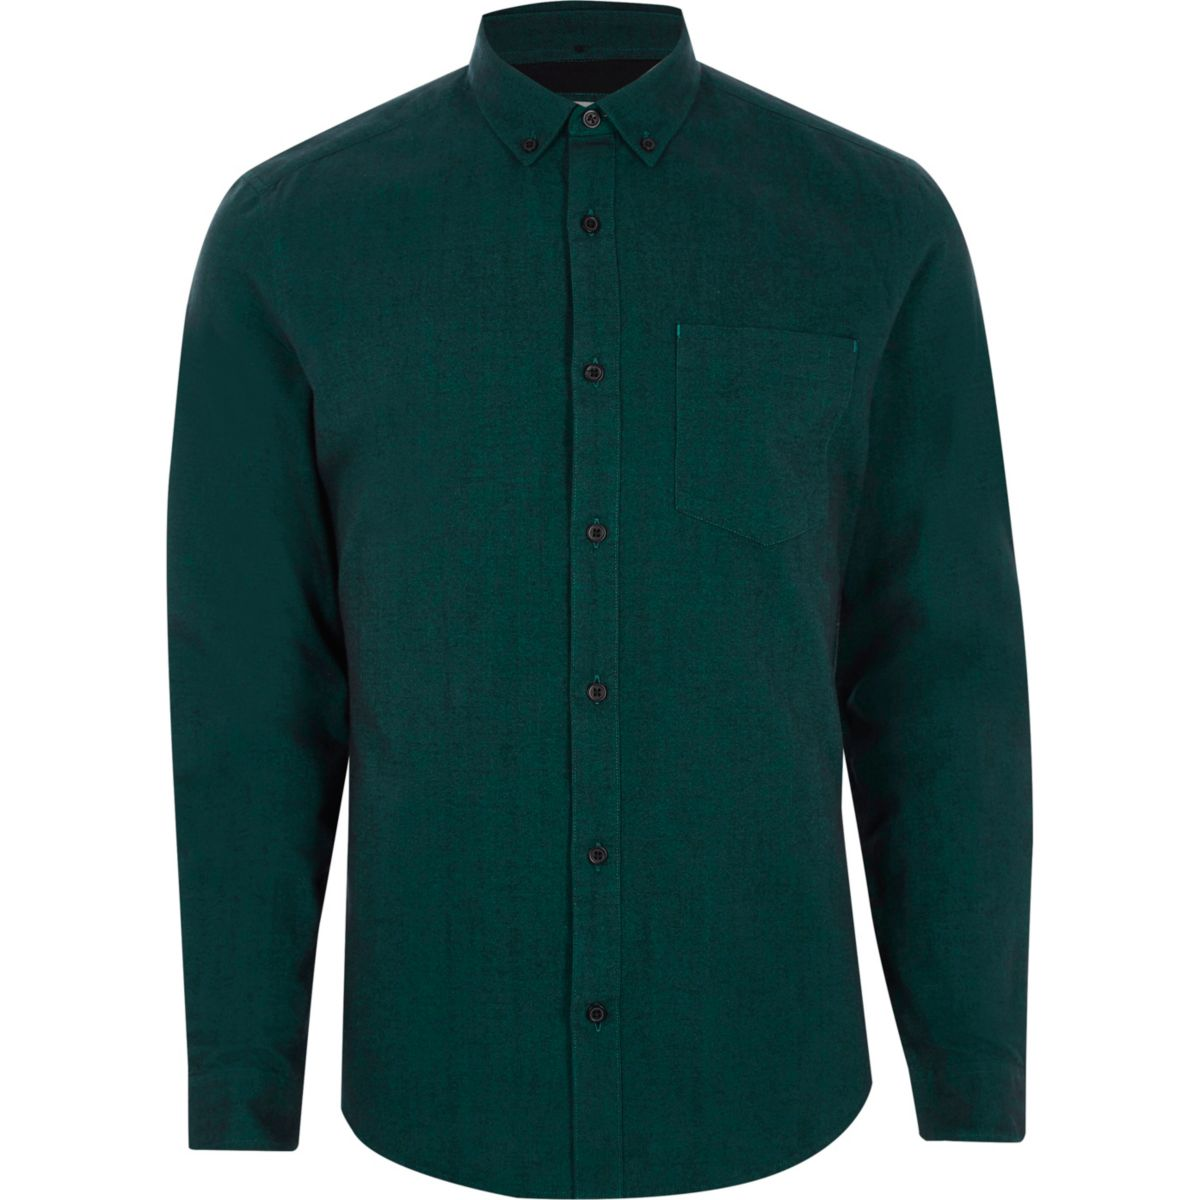 Teal slim fit long sleeve Oxford shirt